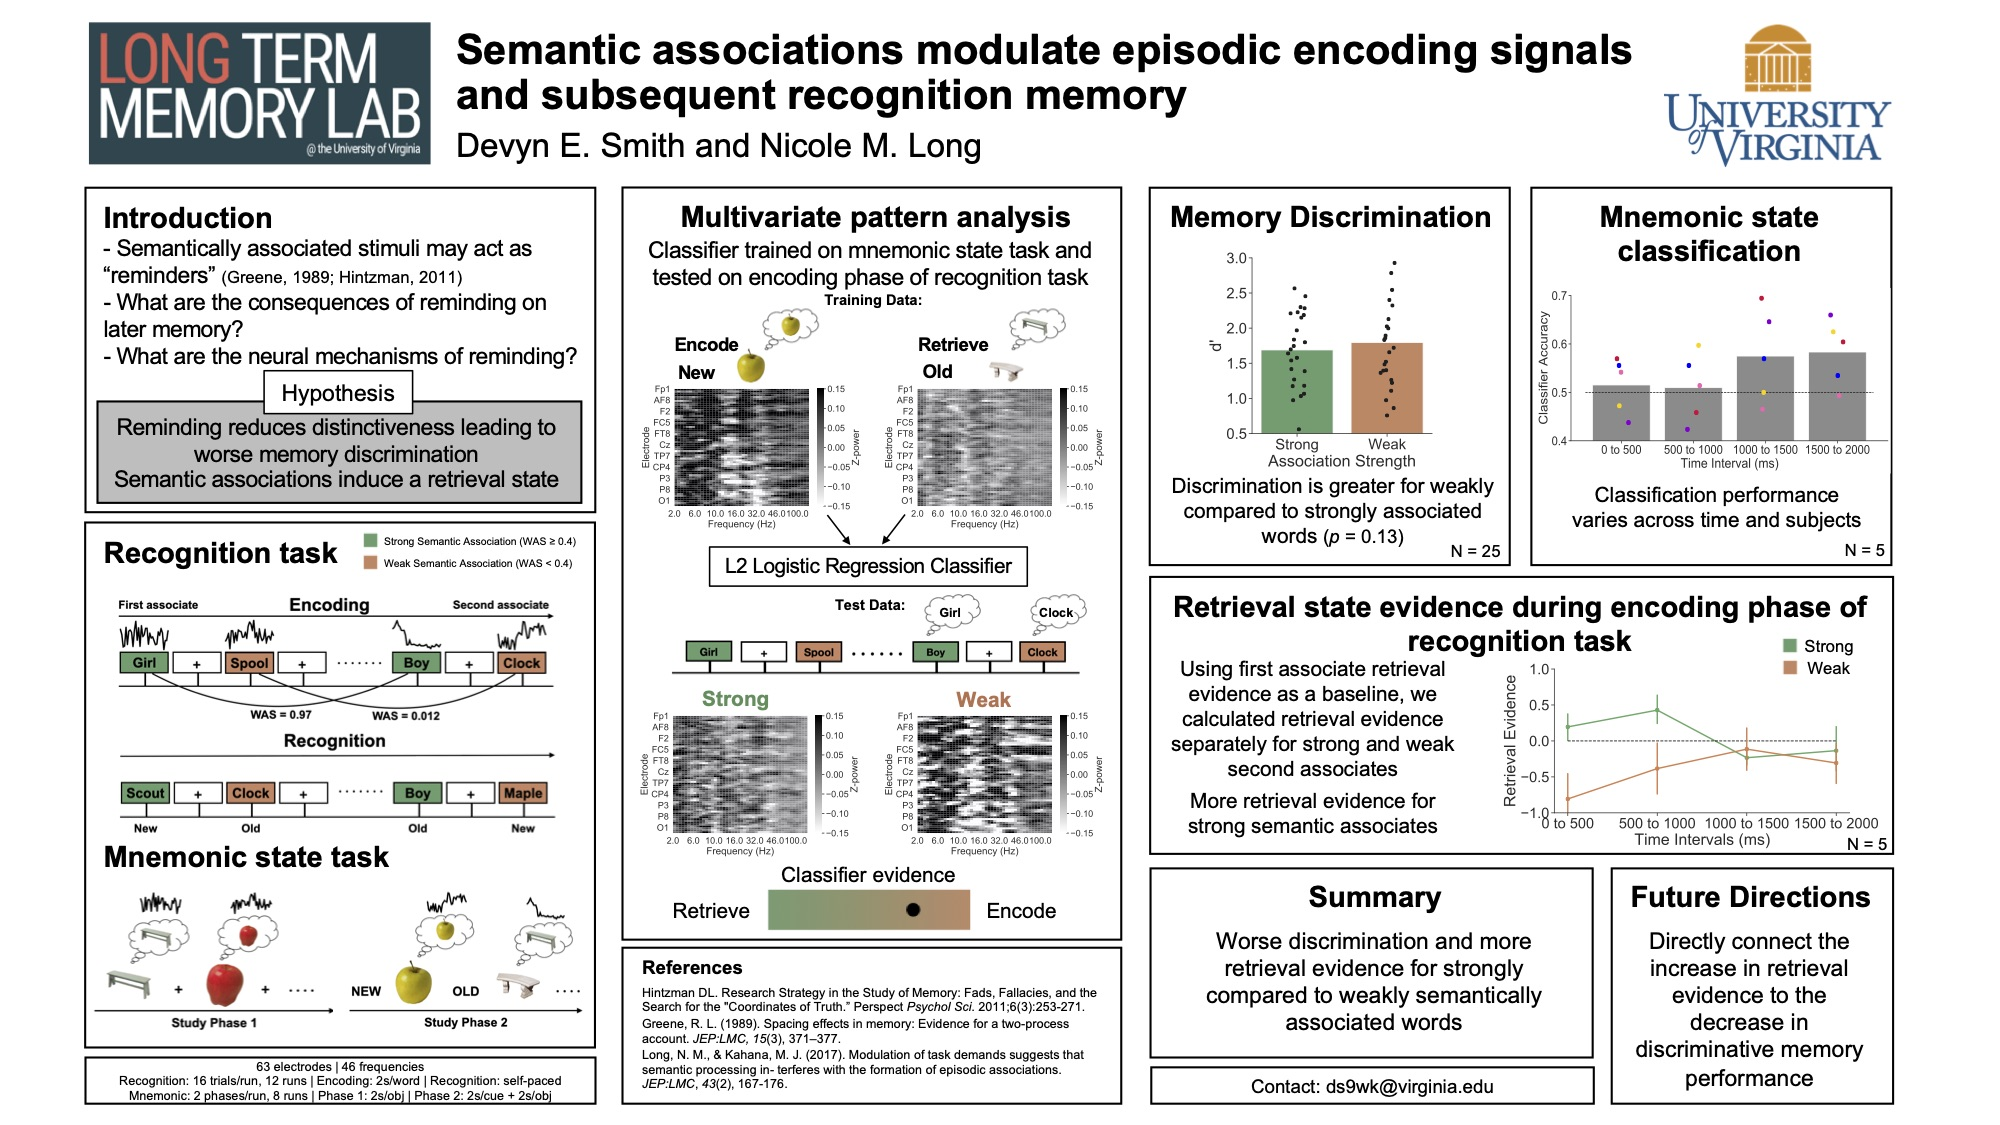 Semantic associations modulate episodic encoding signals and subsequent recognition memory